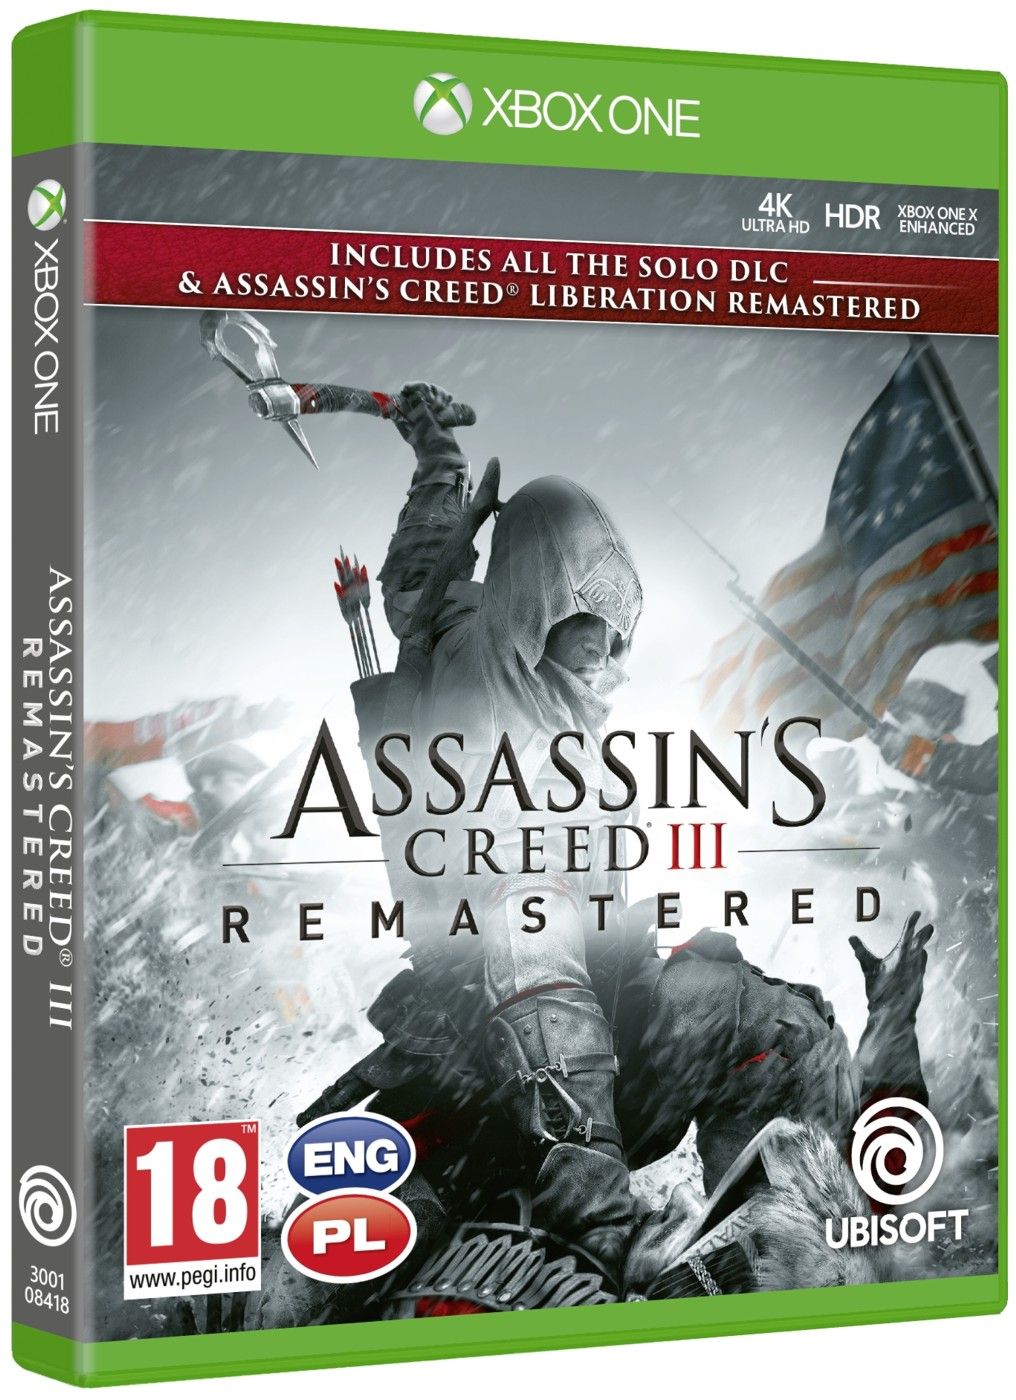 Assassin's Creed 3 Remastered - Xone